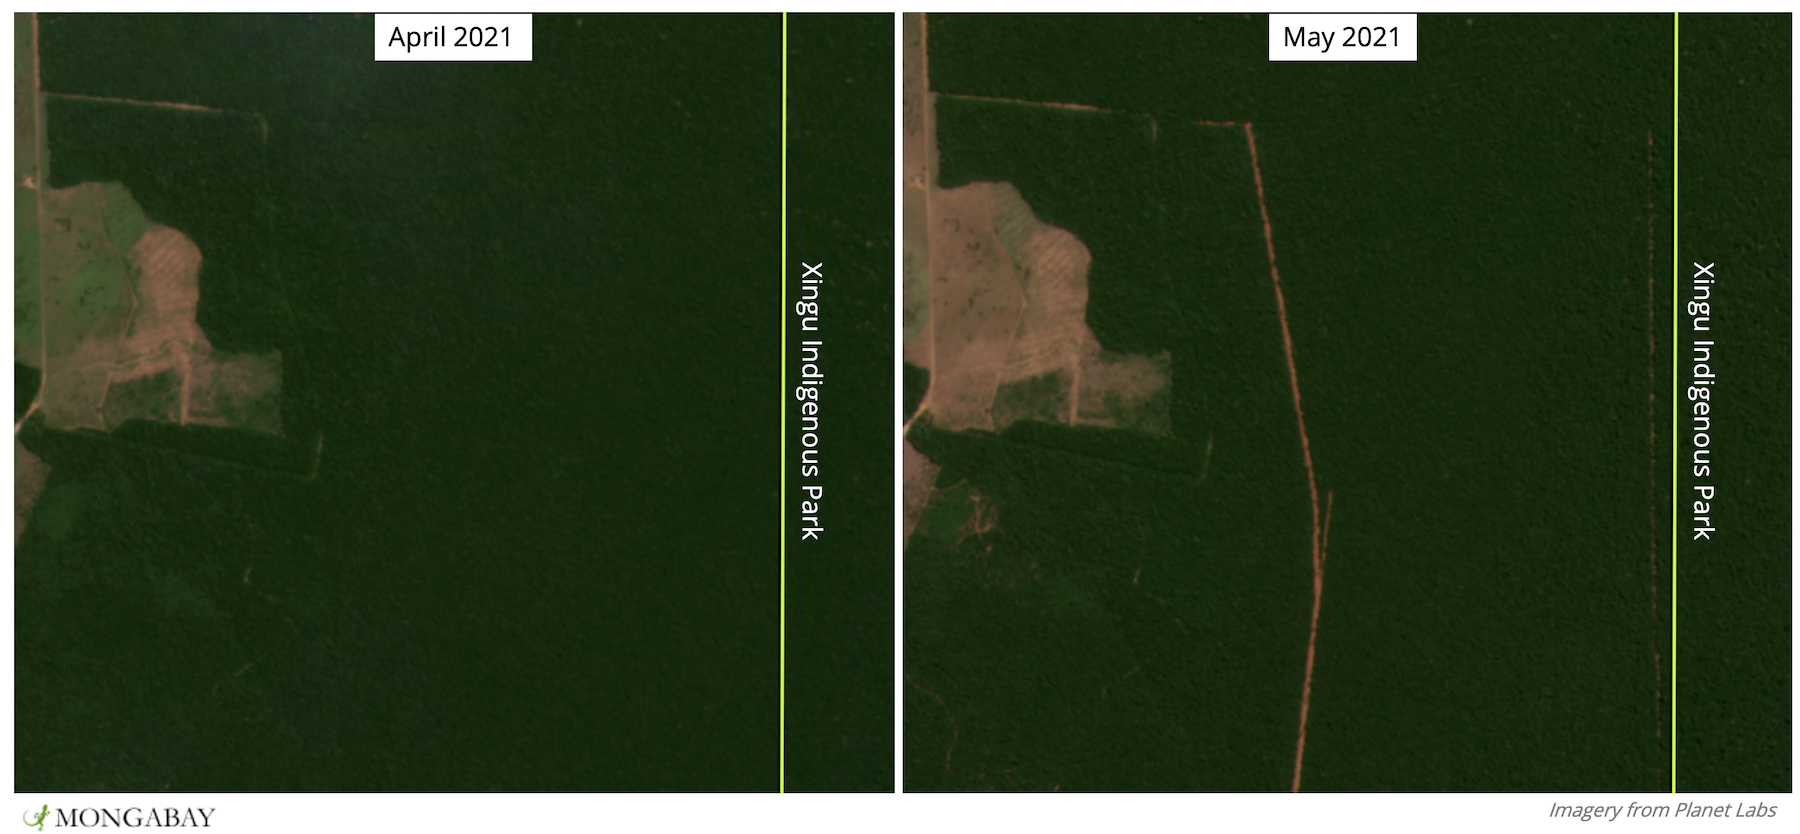 Satellite imagery shows recent clearing very close to Xingu Indigenous Park - including right up against its border.